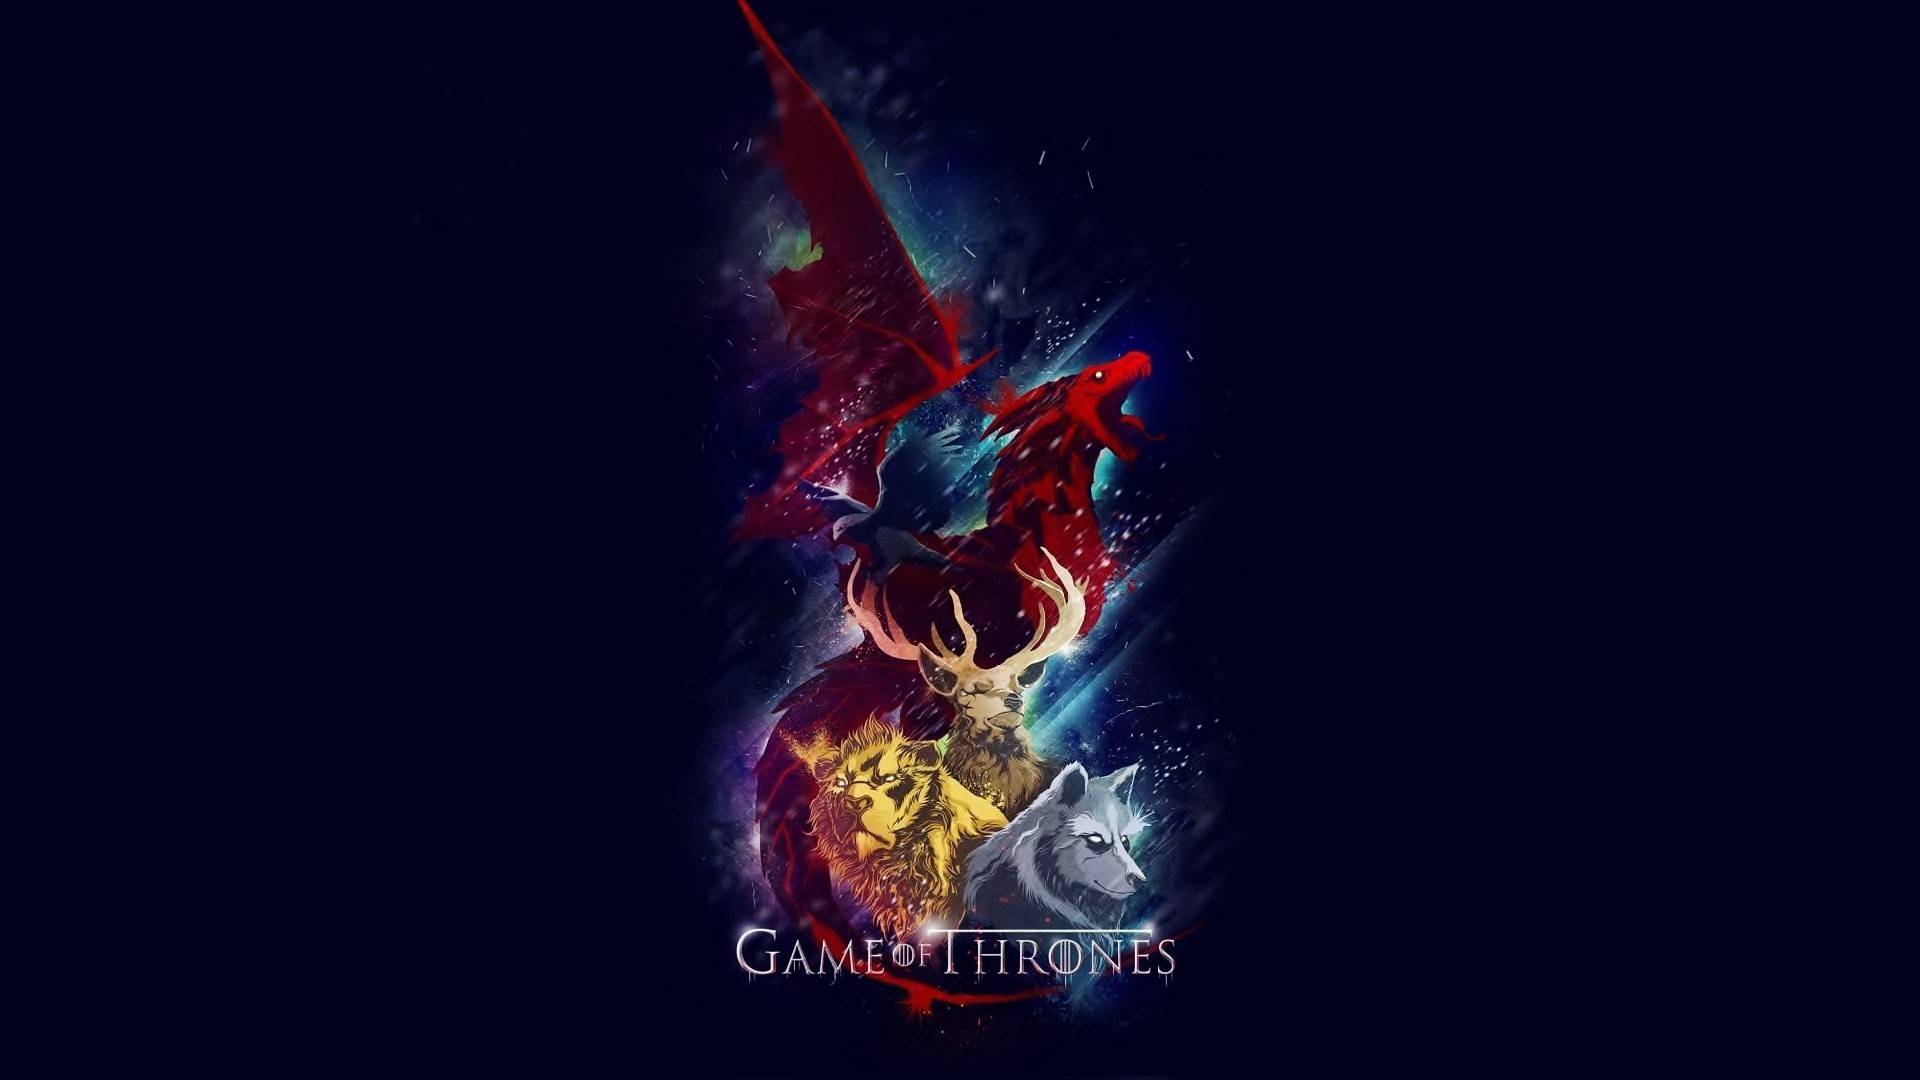 Game Of Thrones Wallpaper 1920x1080 ① Download Free Cool Hd